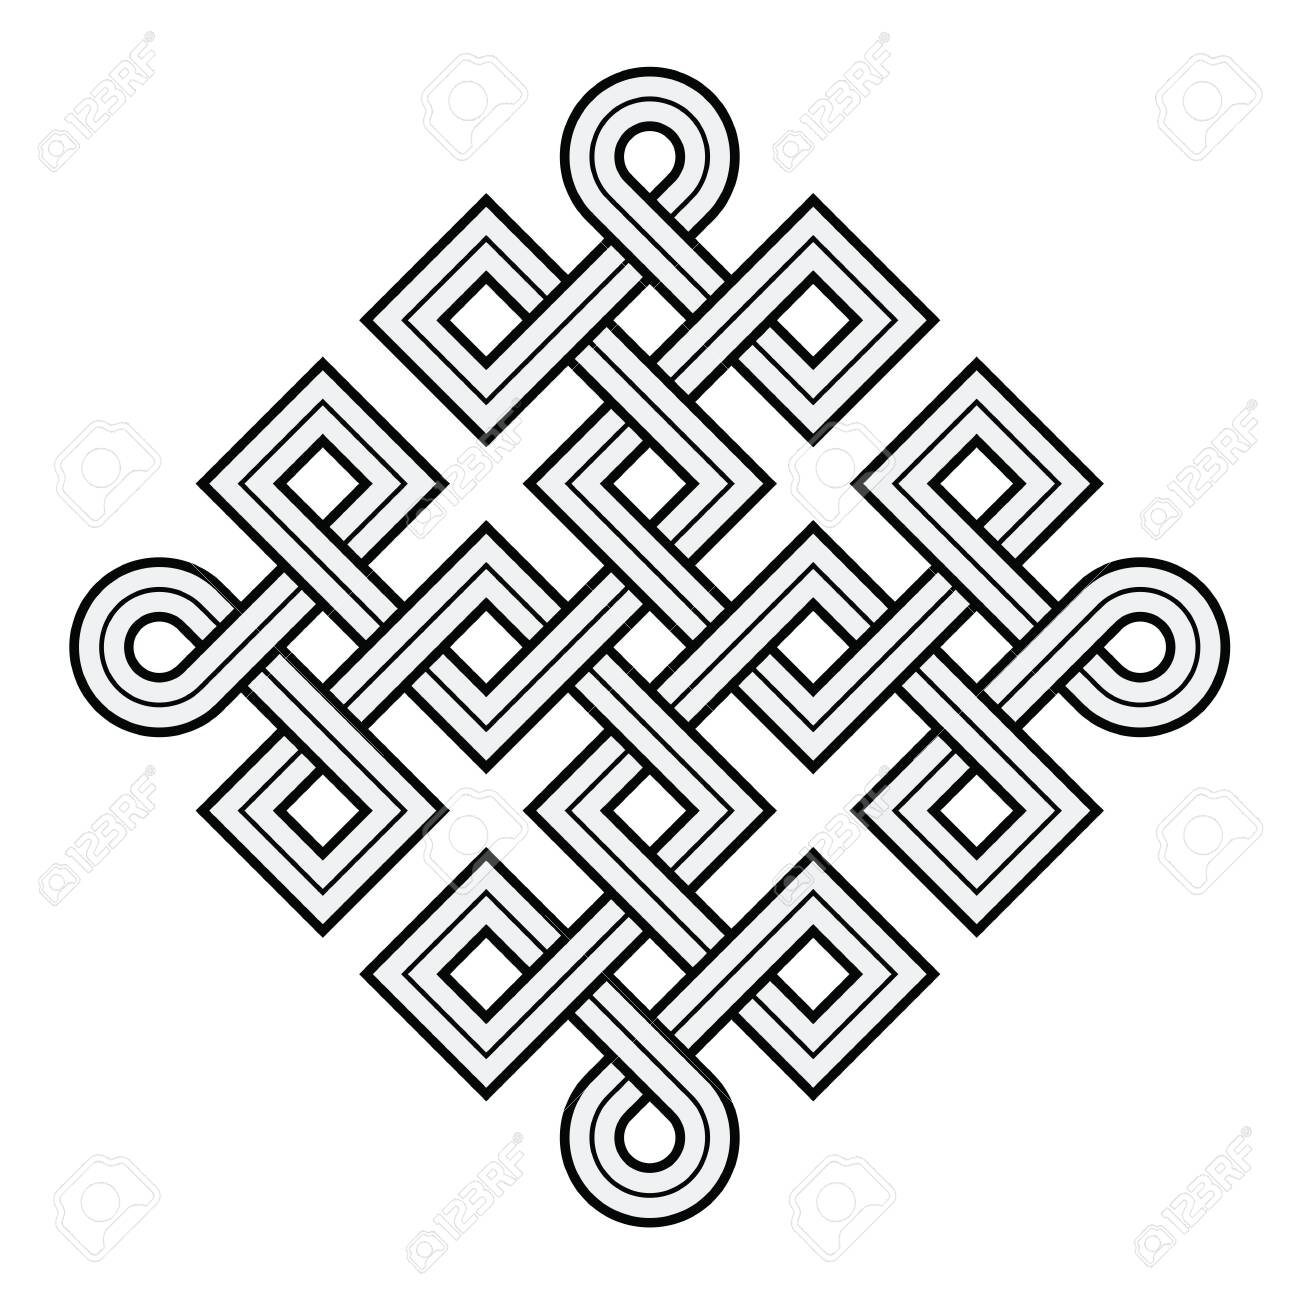 Vector Illustration Of A Viking Nordic Knot Mystic Decorative Royalty Free Cliparts Vectors And Stock Illustration Image 140609841